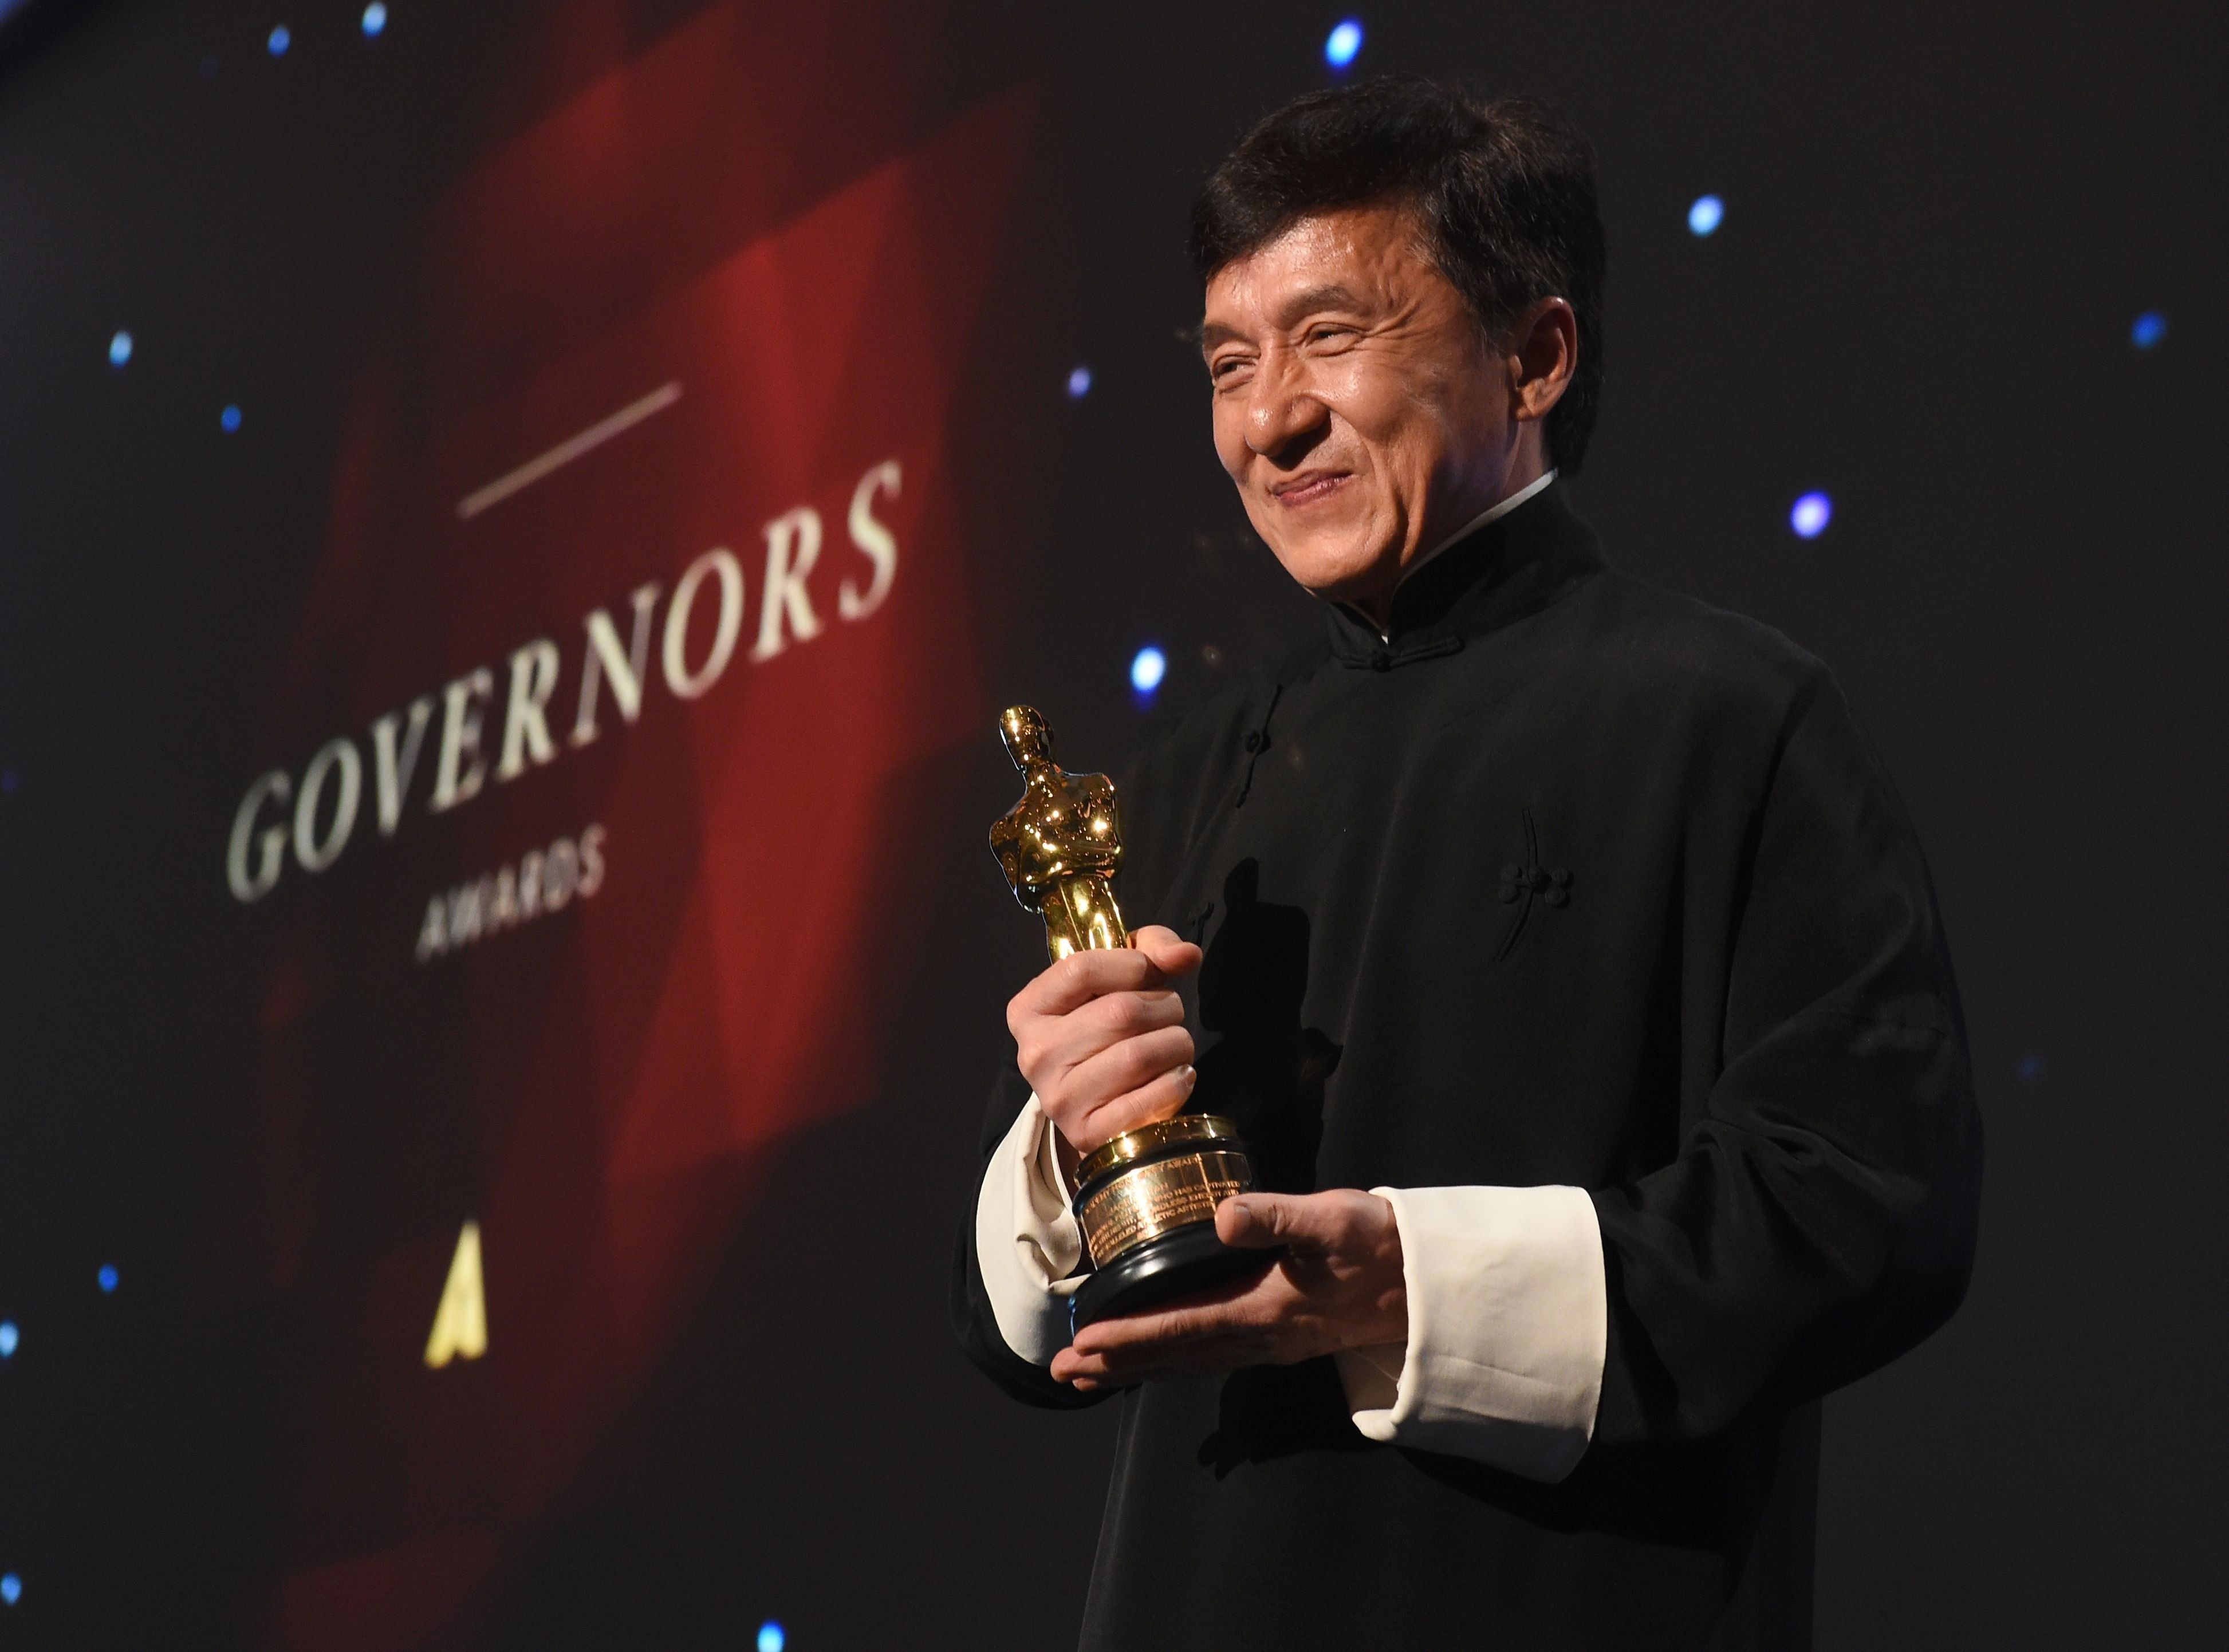 Jackie Chan poses with his Honorary Oscar Award during the 8th Annual Governors Awards hosted by the Academy of Motion Picture Arts and Sciences at the Hollywood & Highland Center in Hollywood, California on November 12, 2016